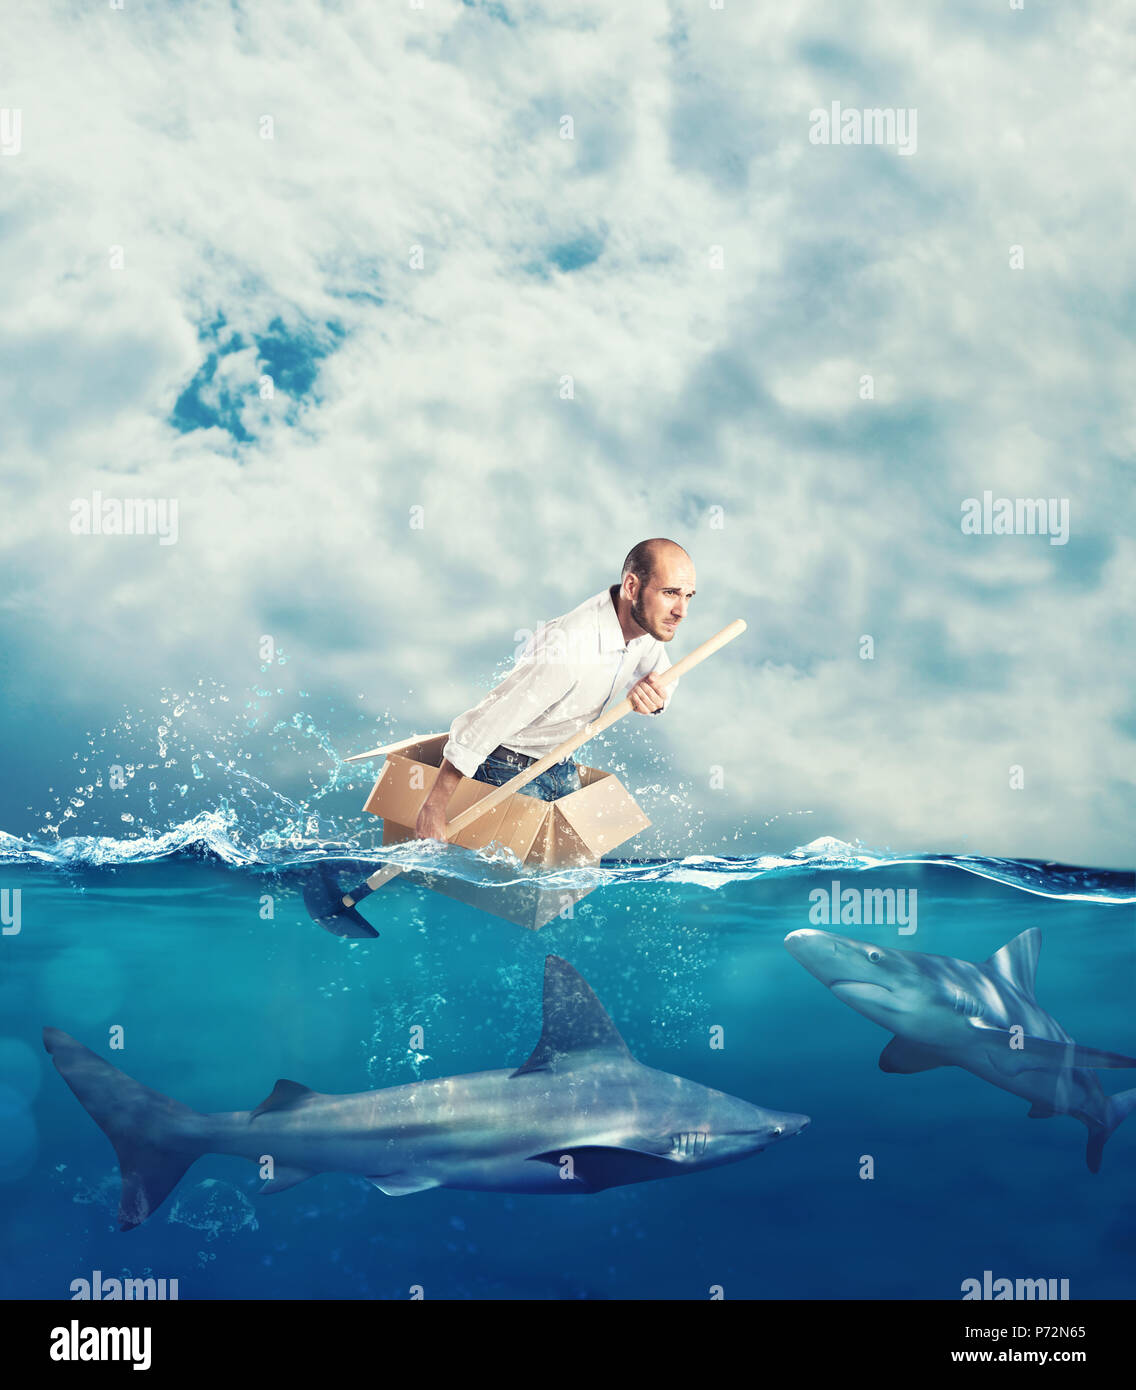 Escape from crisis concept with a businessman on a cardboard - Stock Image